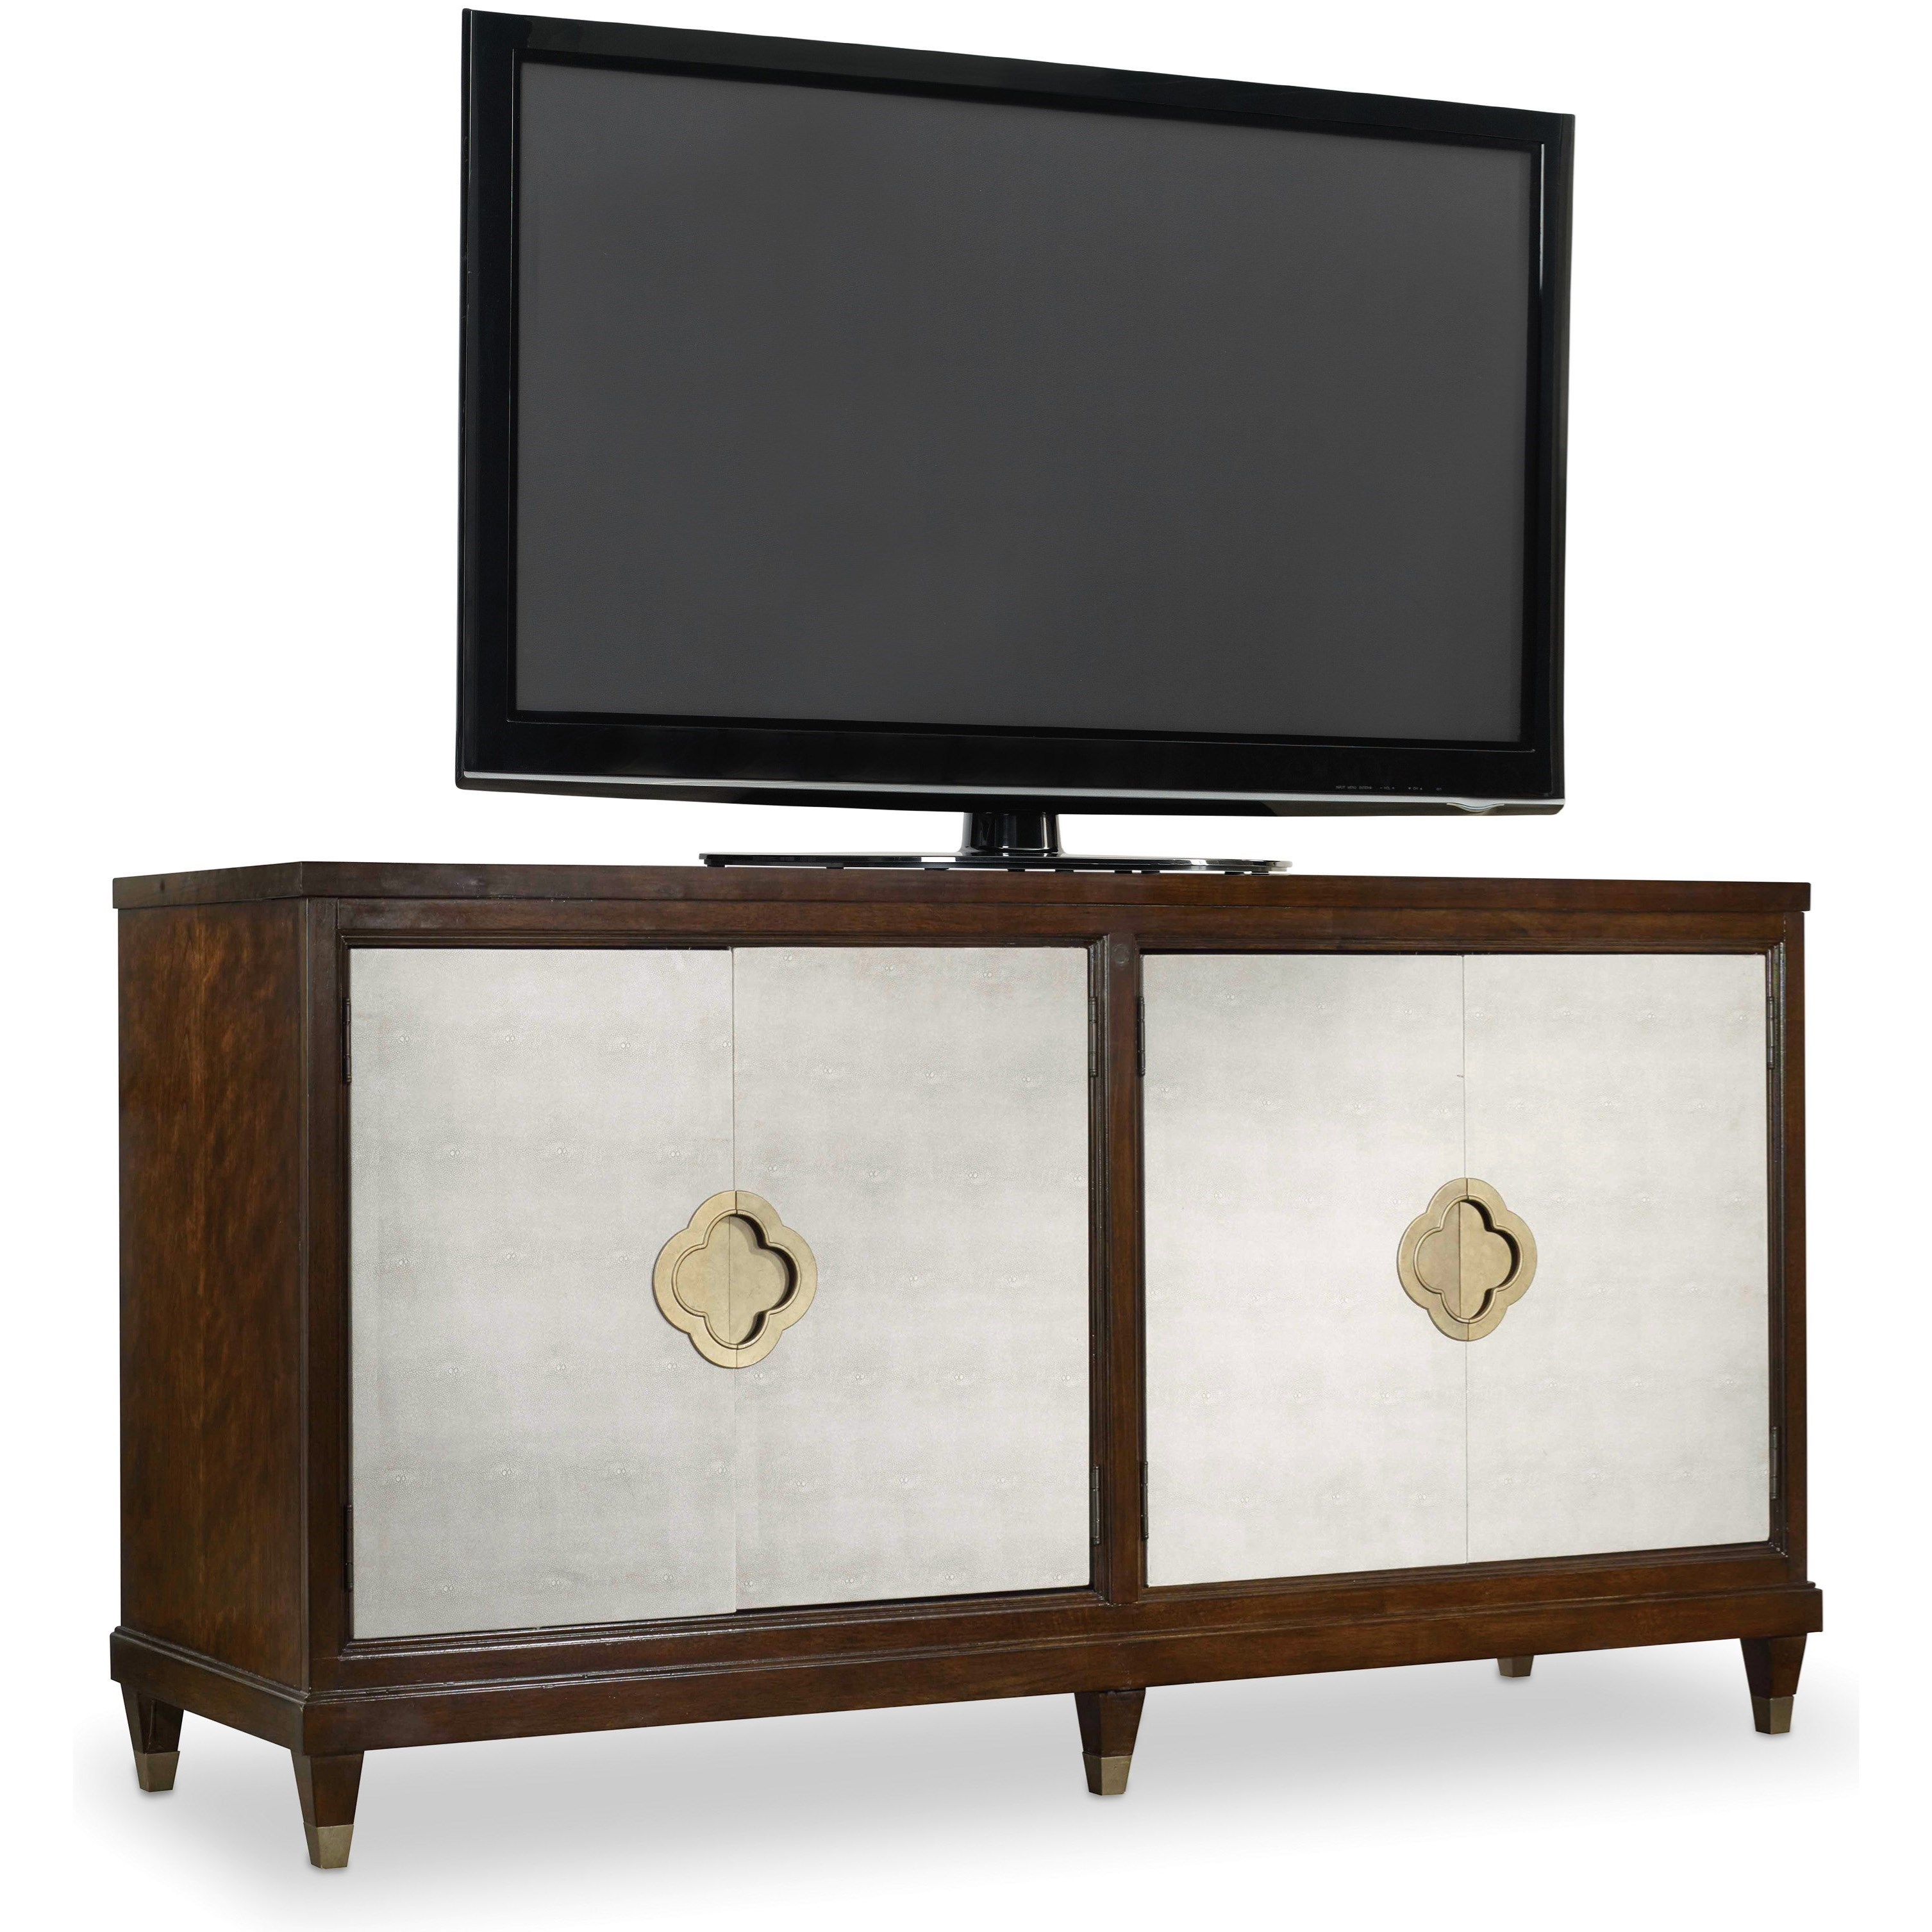 Hooker Furniture Skyline Entertainment Console - Item Number: 5336-55464